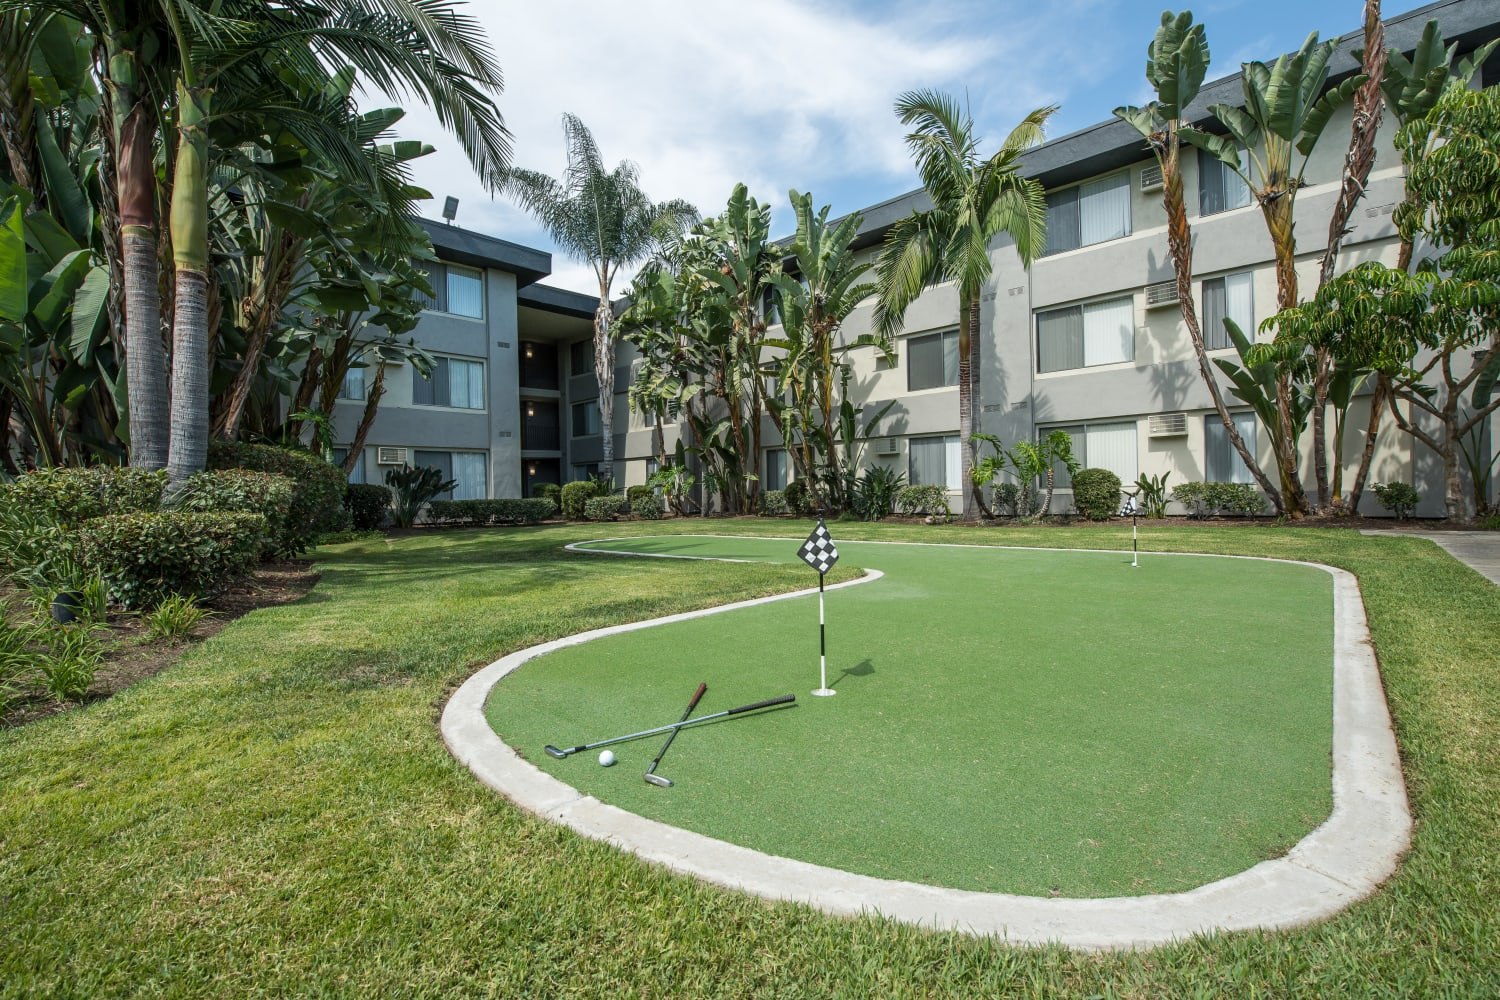 UCE Apartment Homes in Fullerton, California, offers a mini golf course